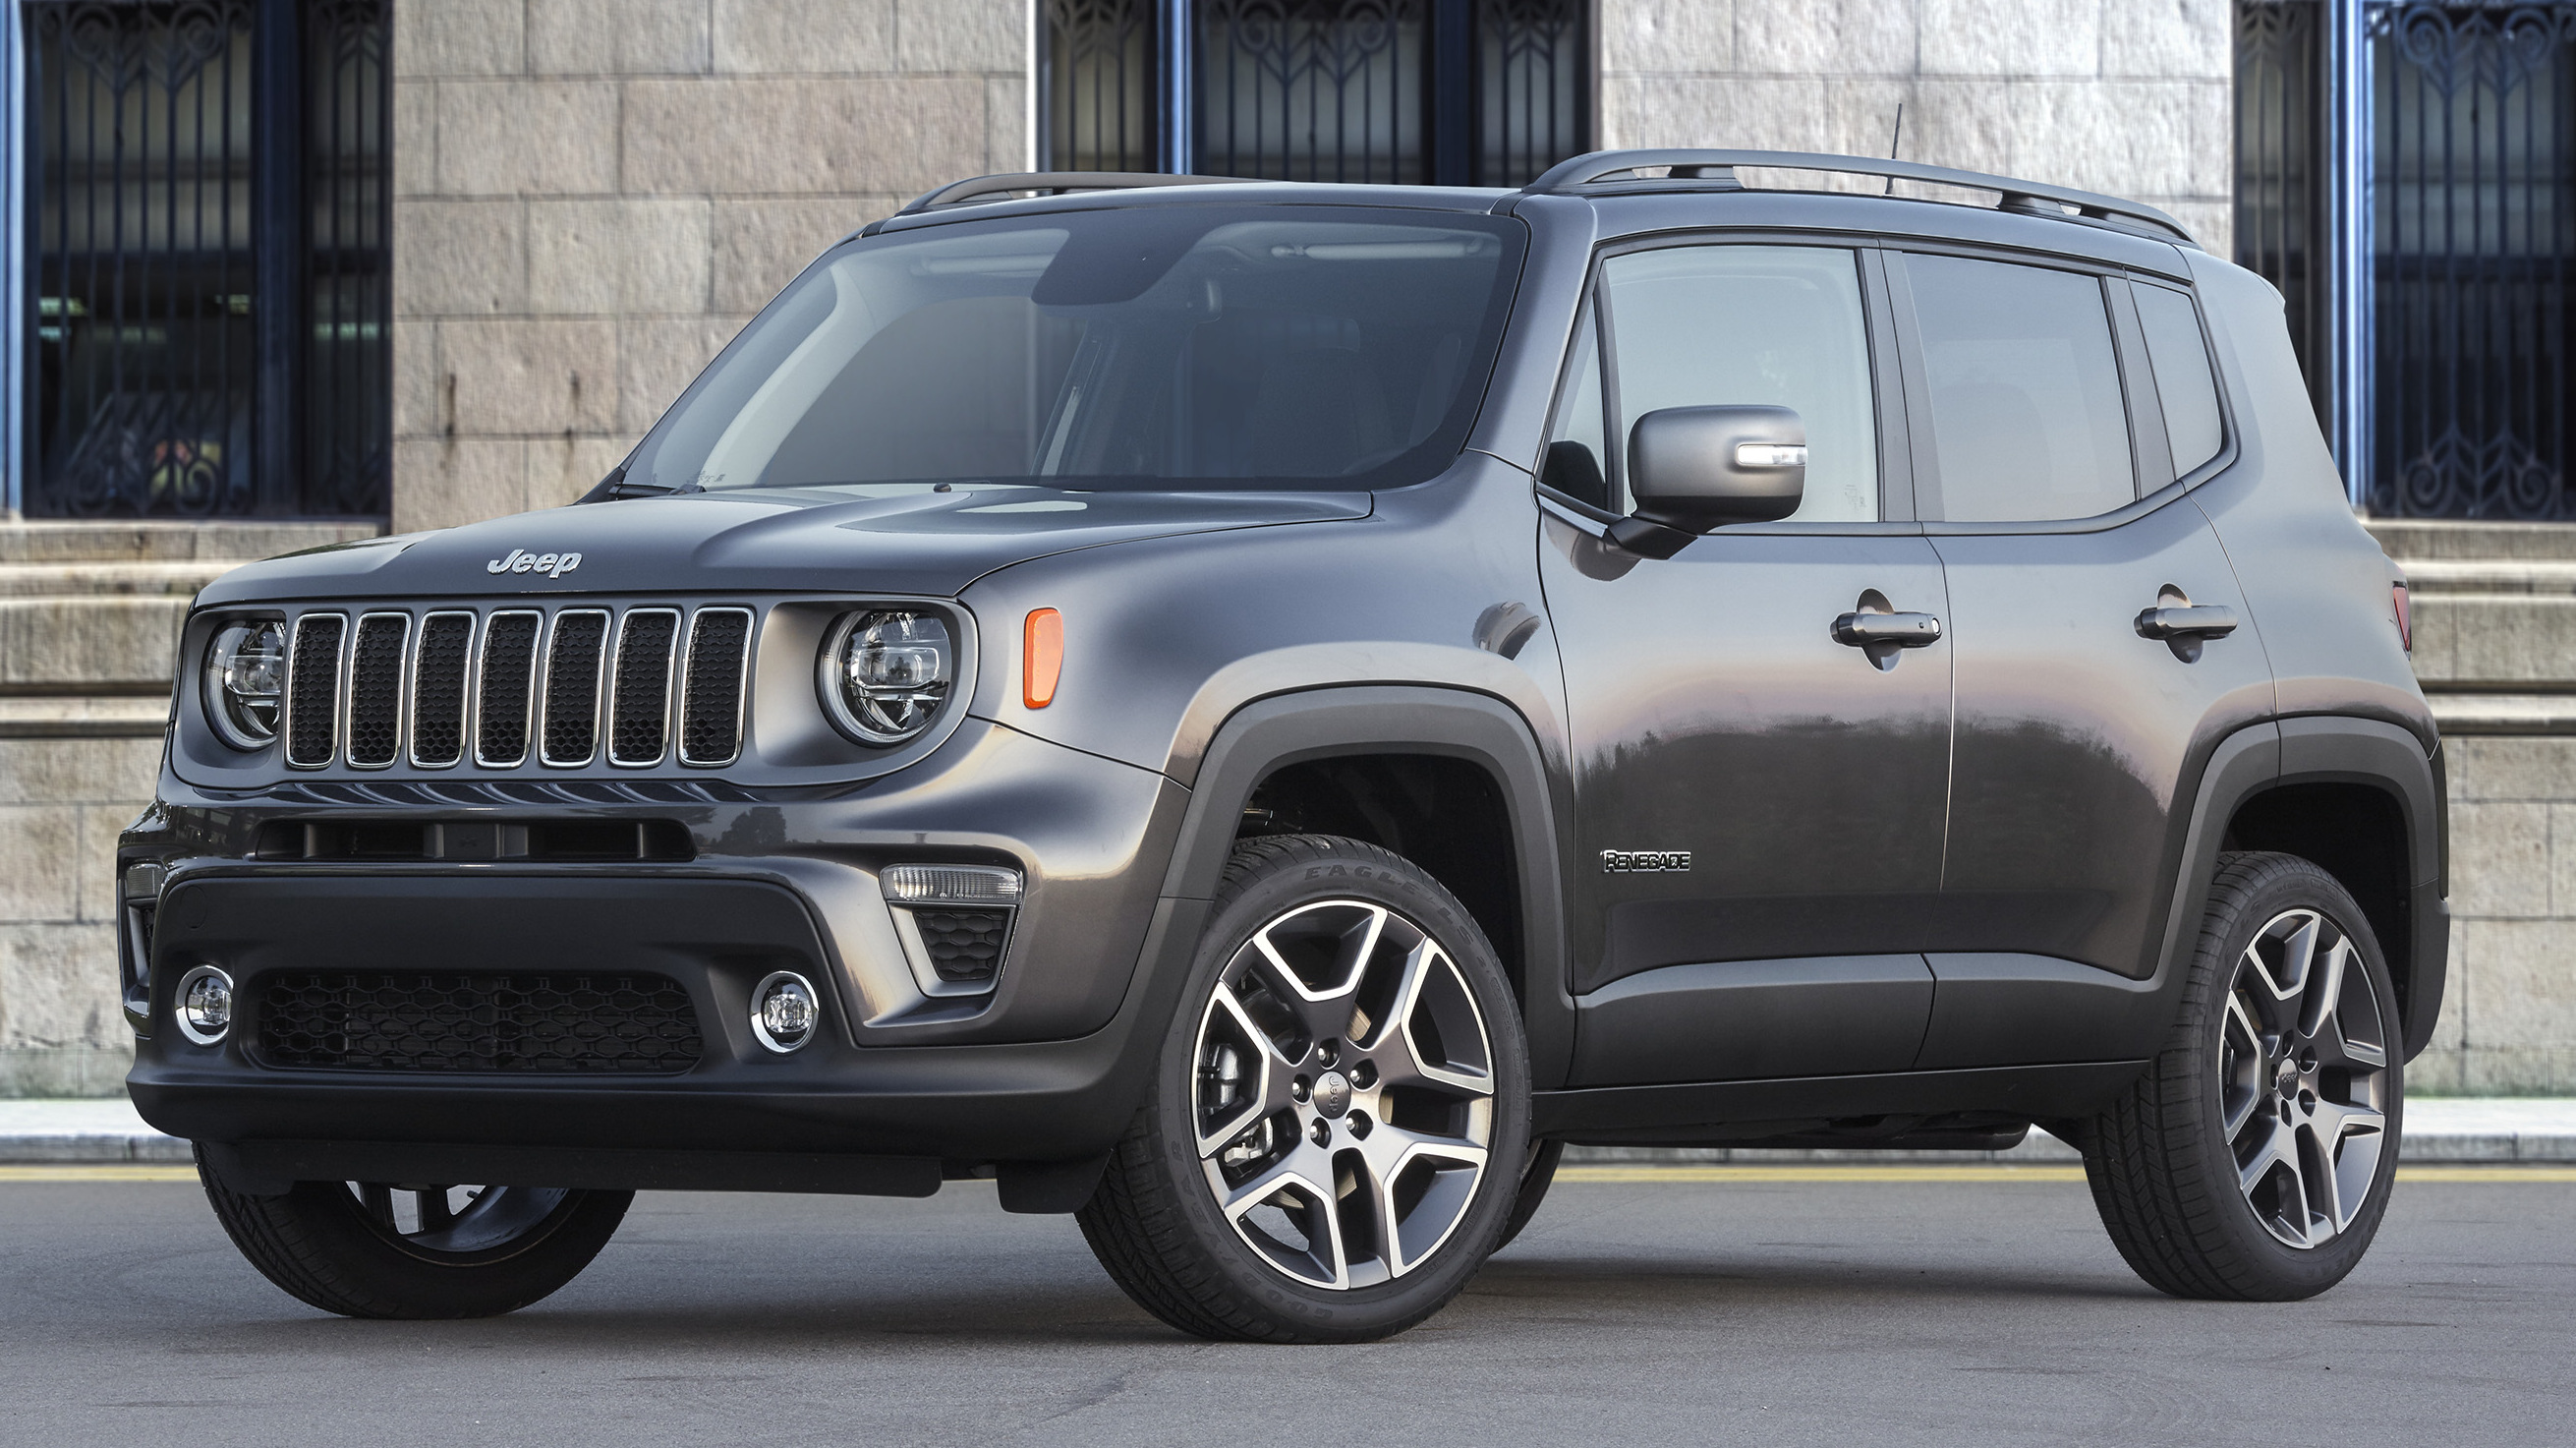 We Take A Look At The 2020 Jeep Renegade Lineup Moparinsiders